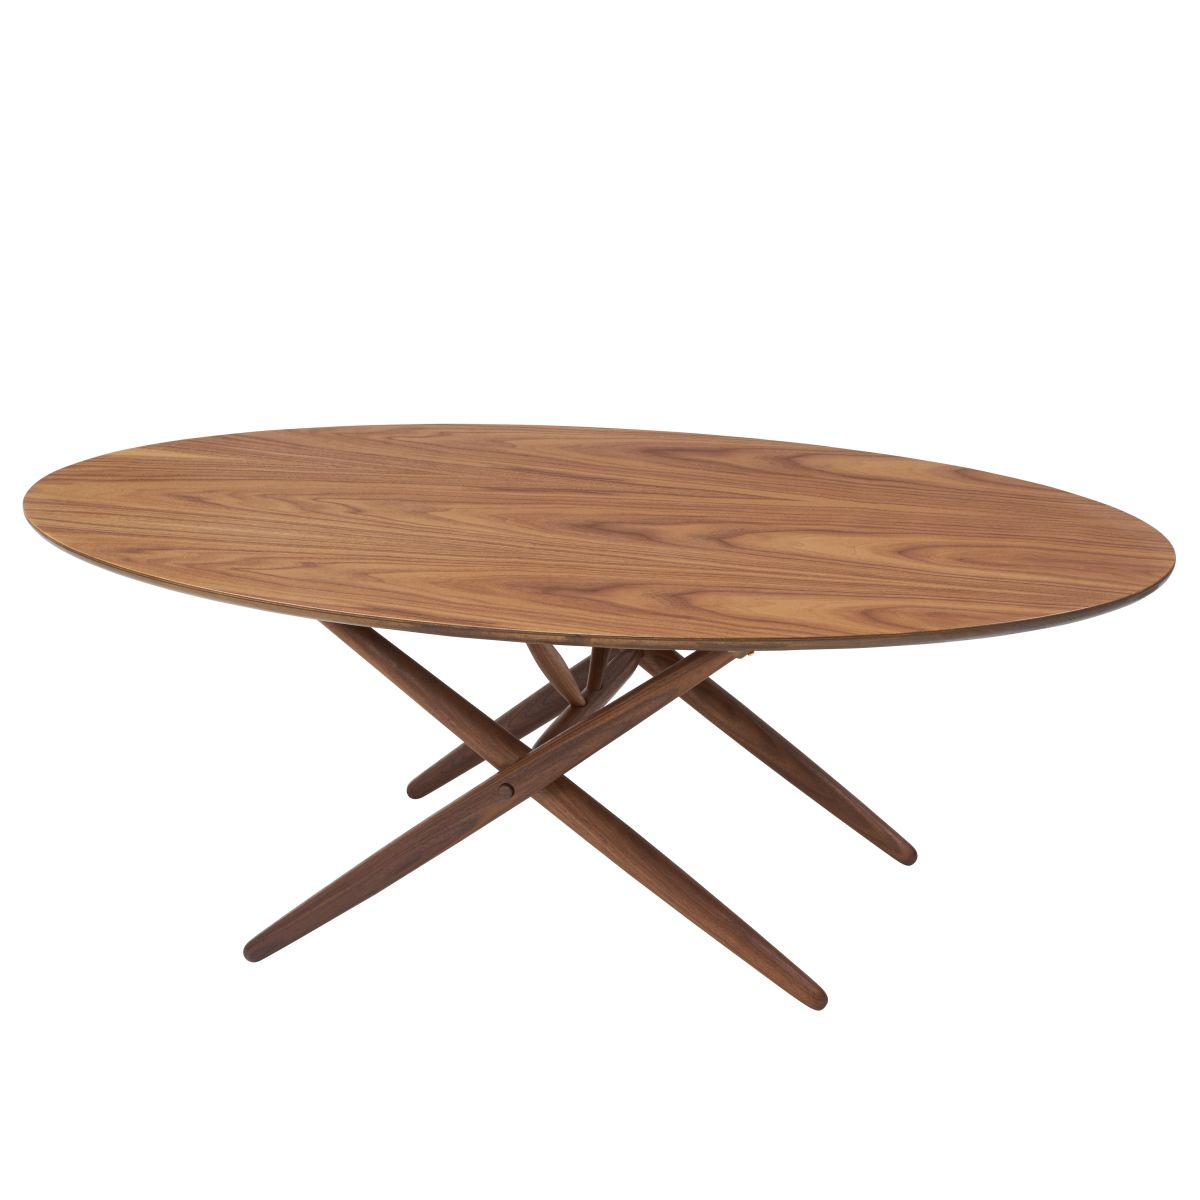 Ovalette-Table-walnut-2627426